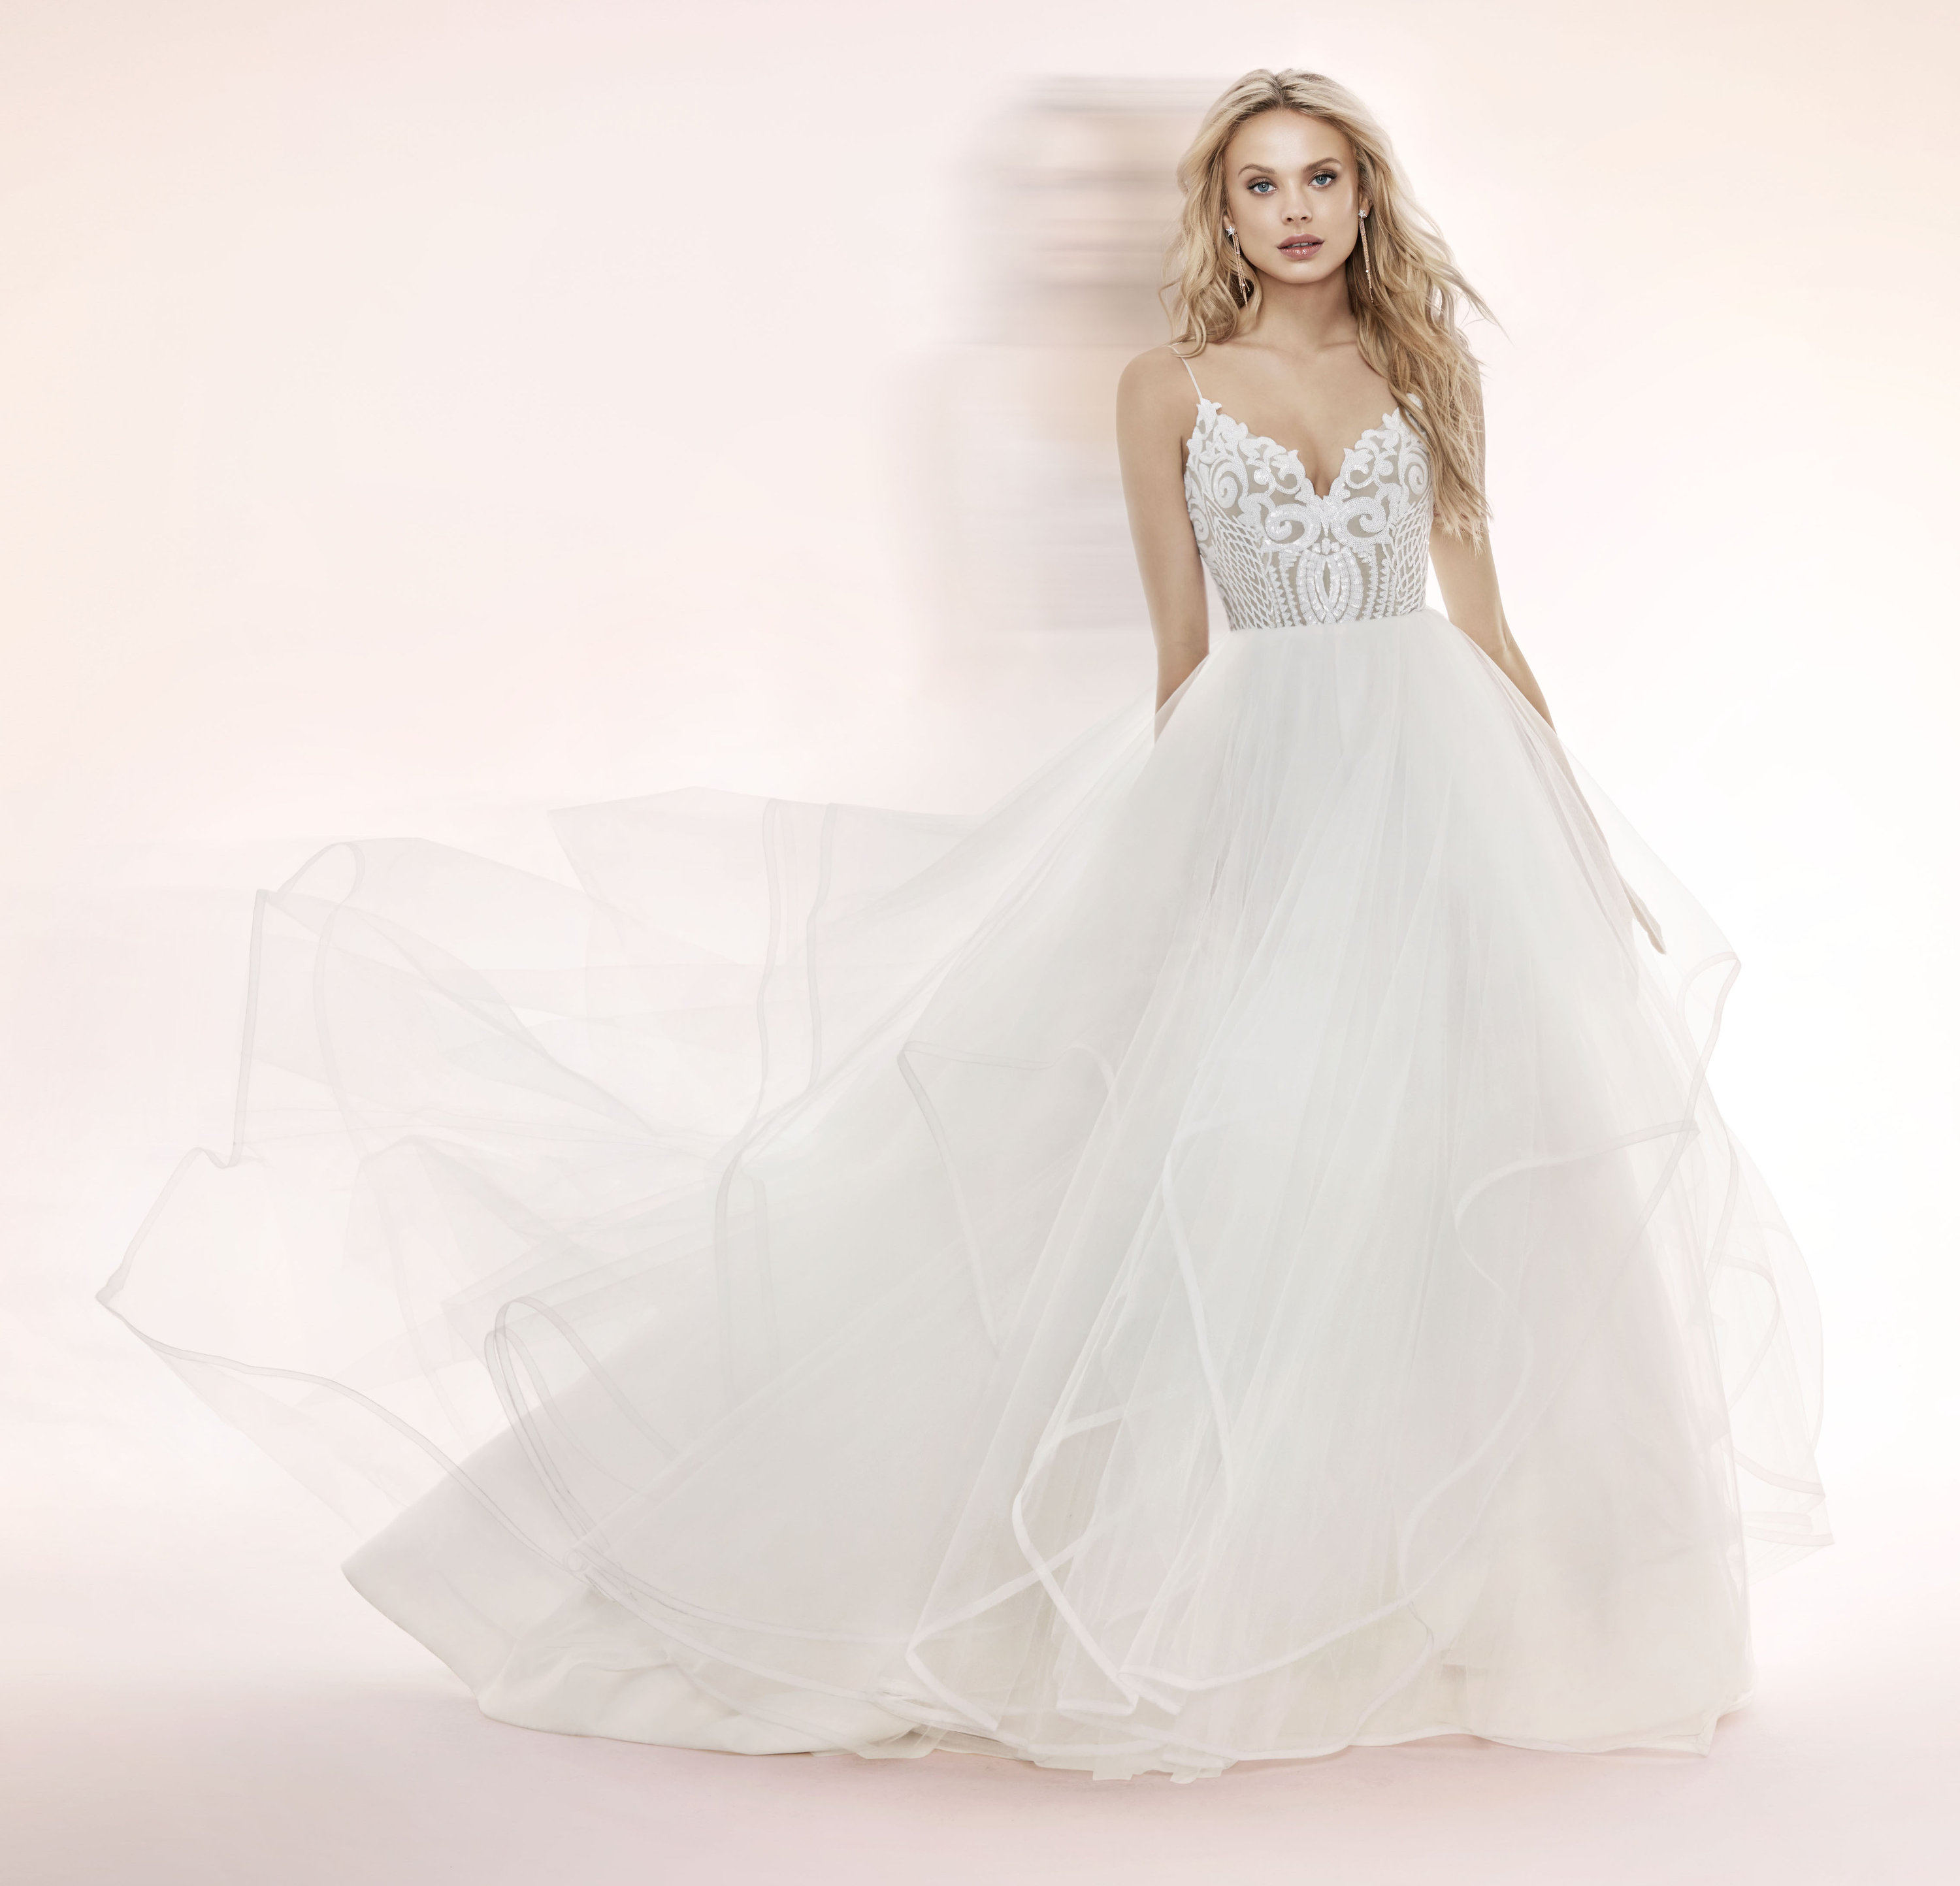 d9fe0159cf1a Blush by Hayley Paige - Annalise Bridal Boutique : Annalise Bridal Boutique